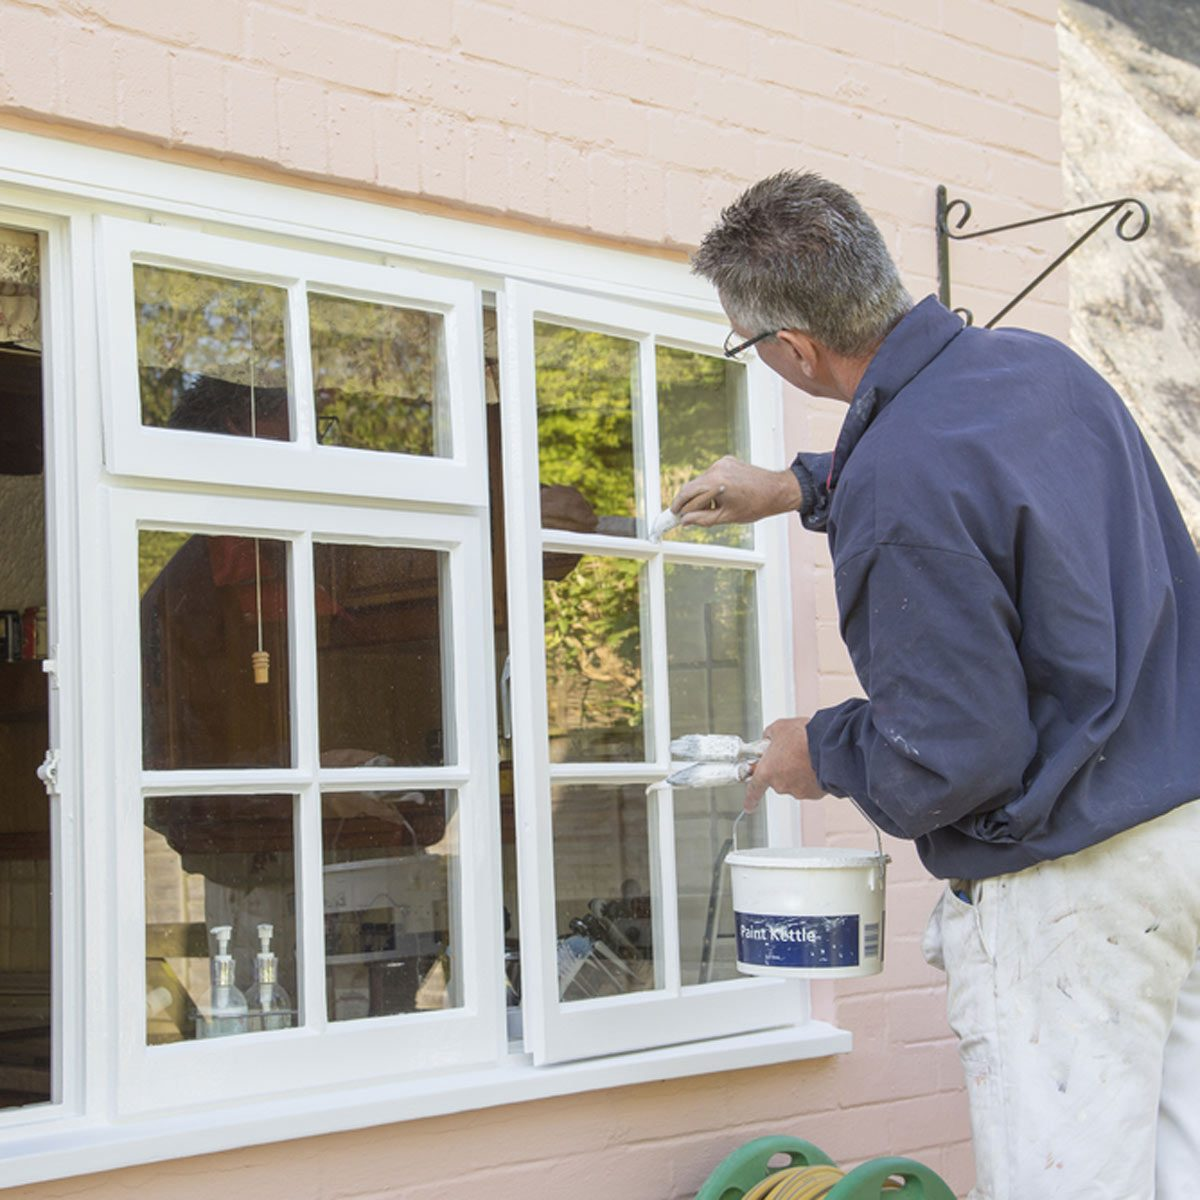 painting house windows residence trim paint